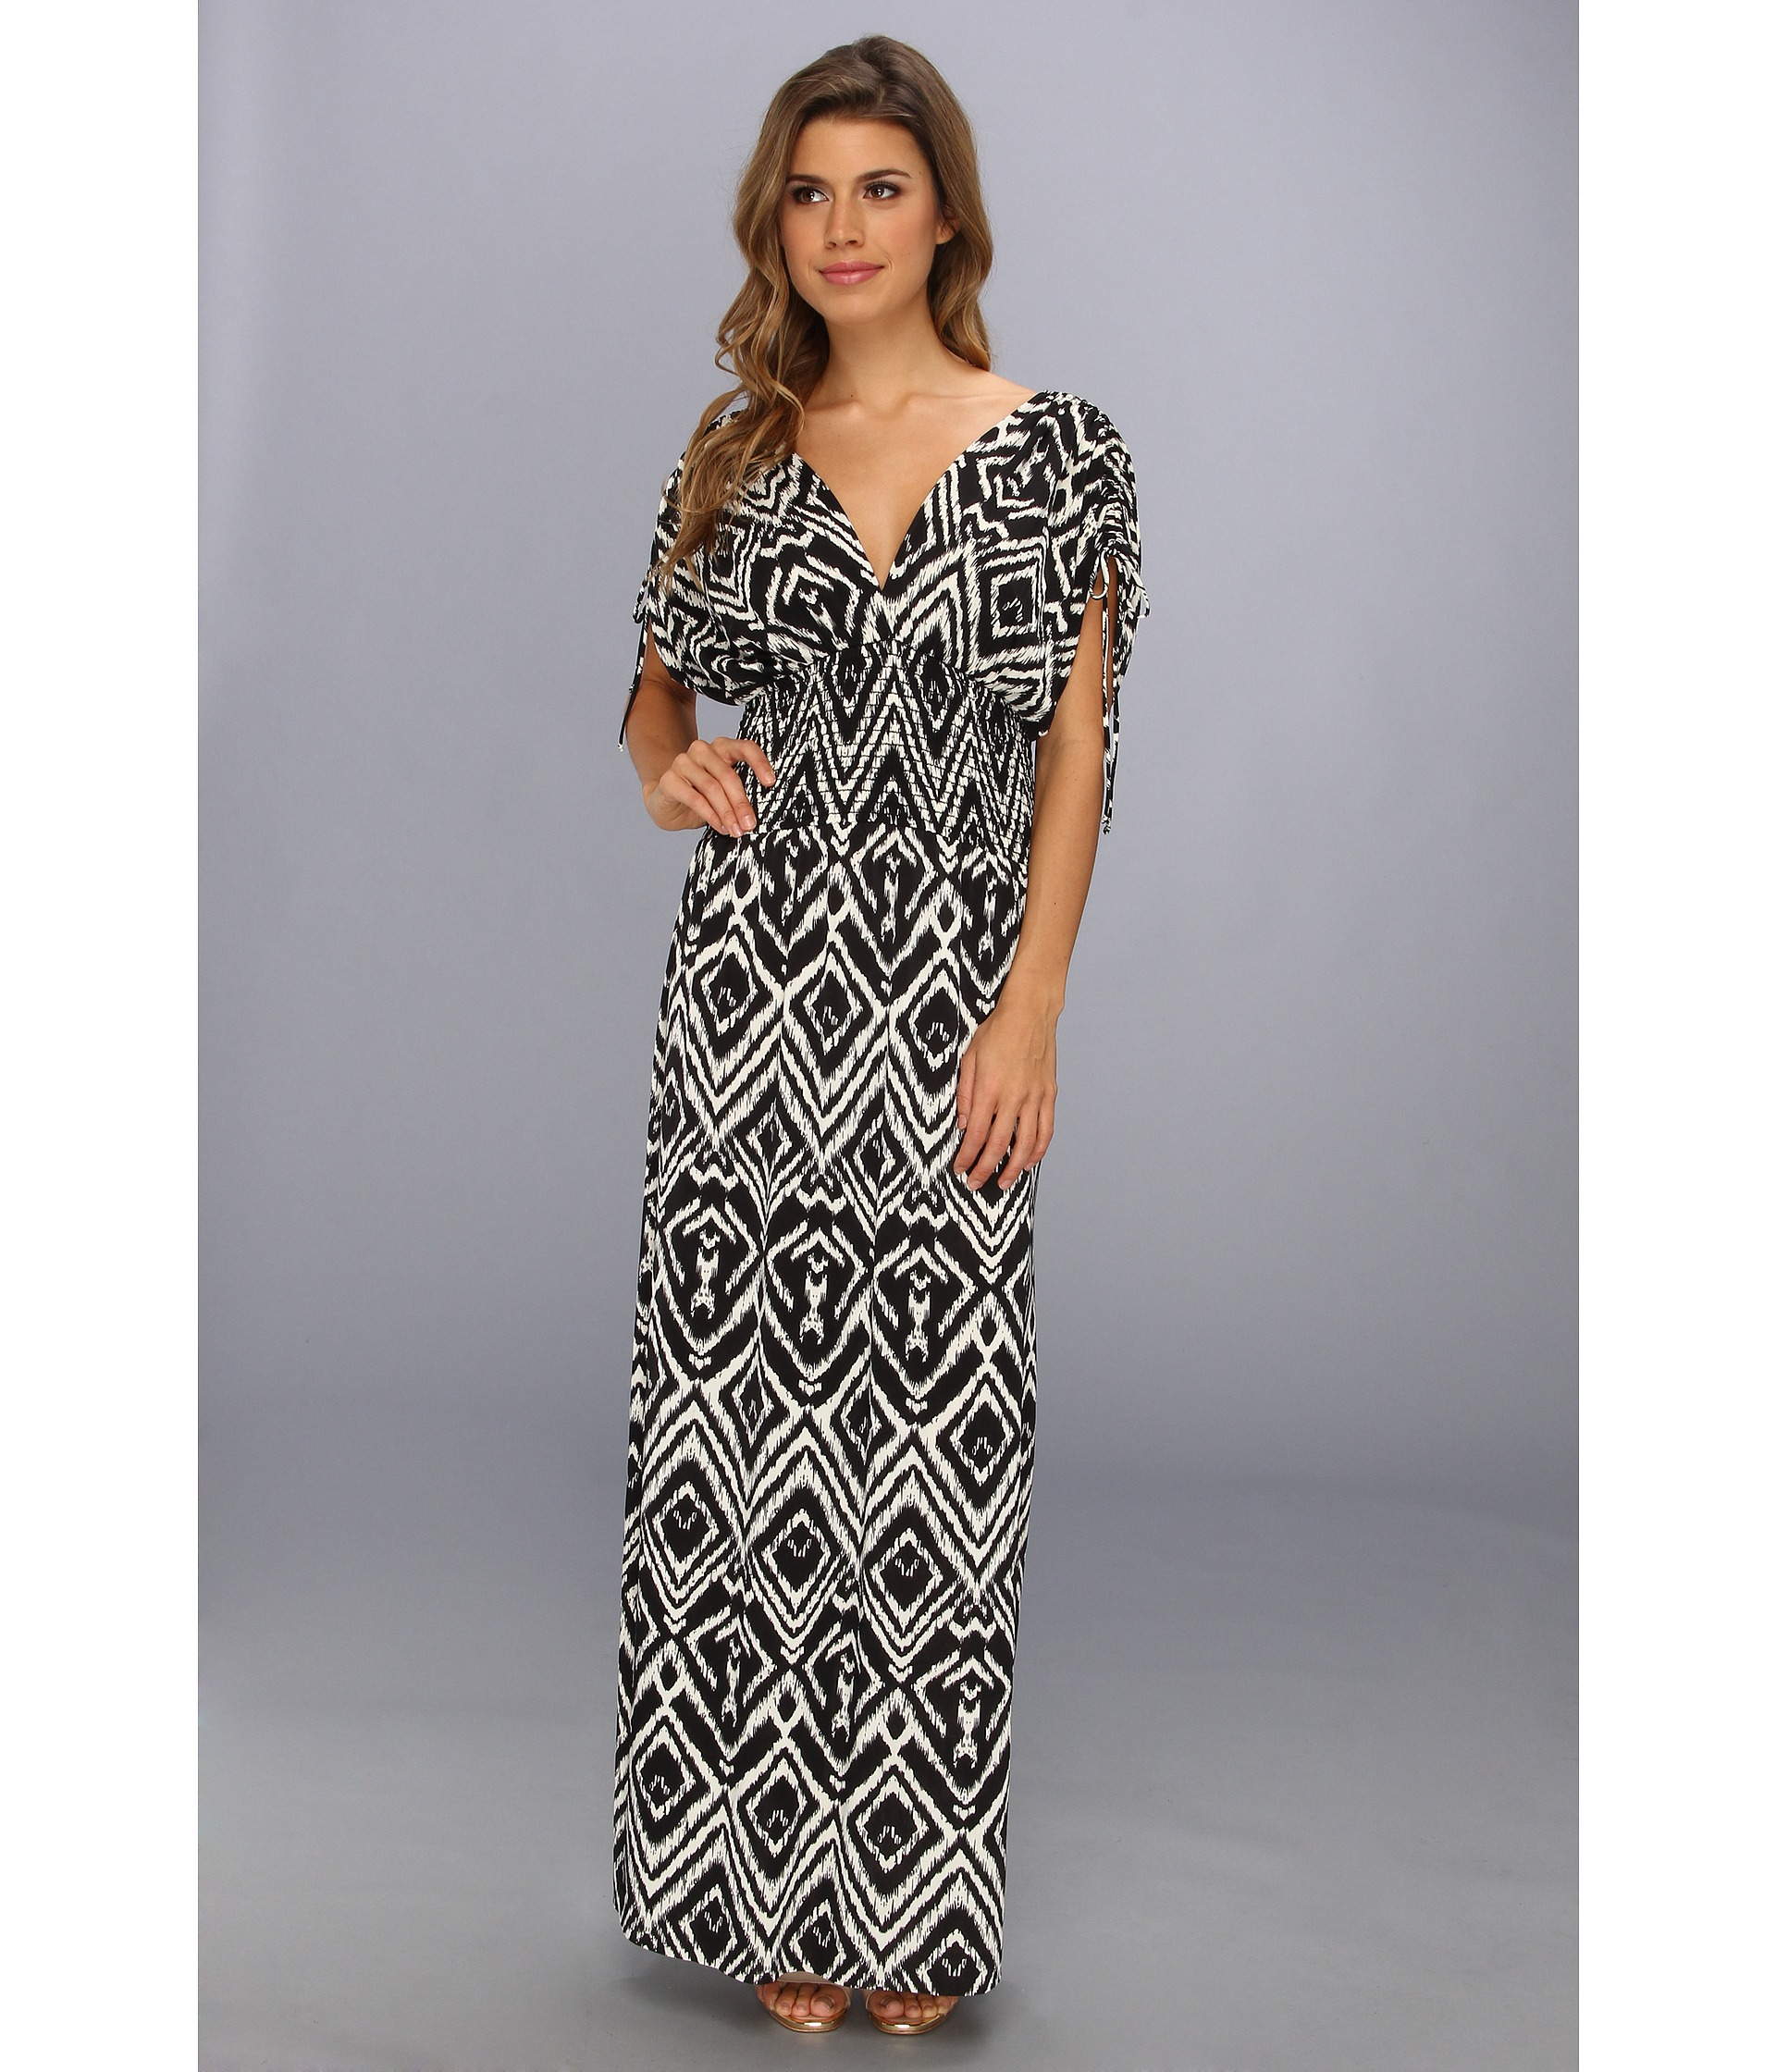 Tbags Los Angeles Empire Smocked Waist Maxi Dress - 6pm.com